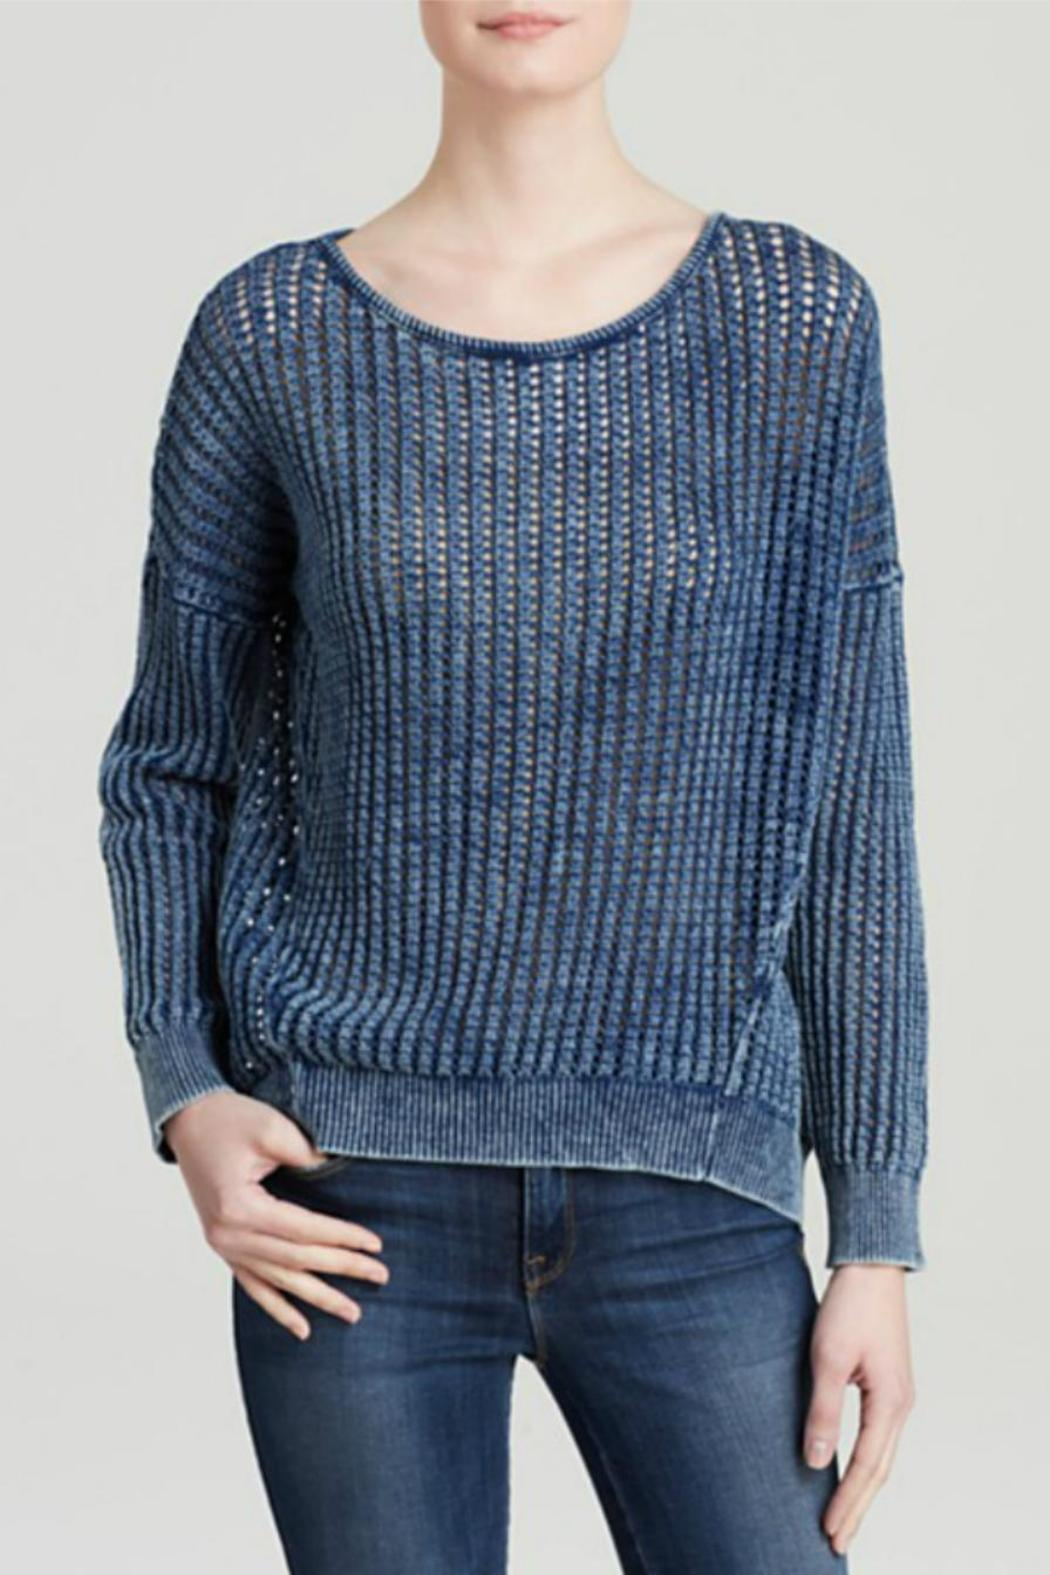 e4ed2cc5a59 Bella Dahl Denim Washed Sweater from Wicker Park by Mulberry   Me ...